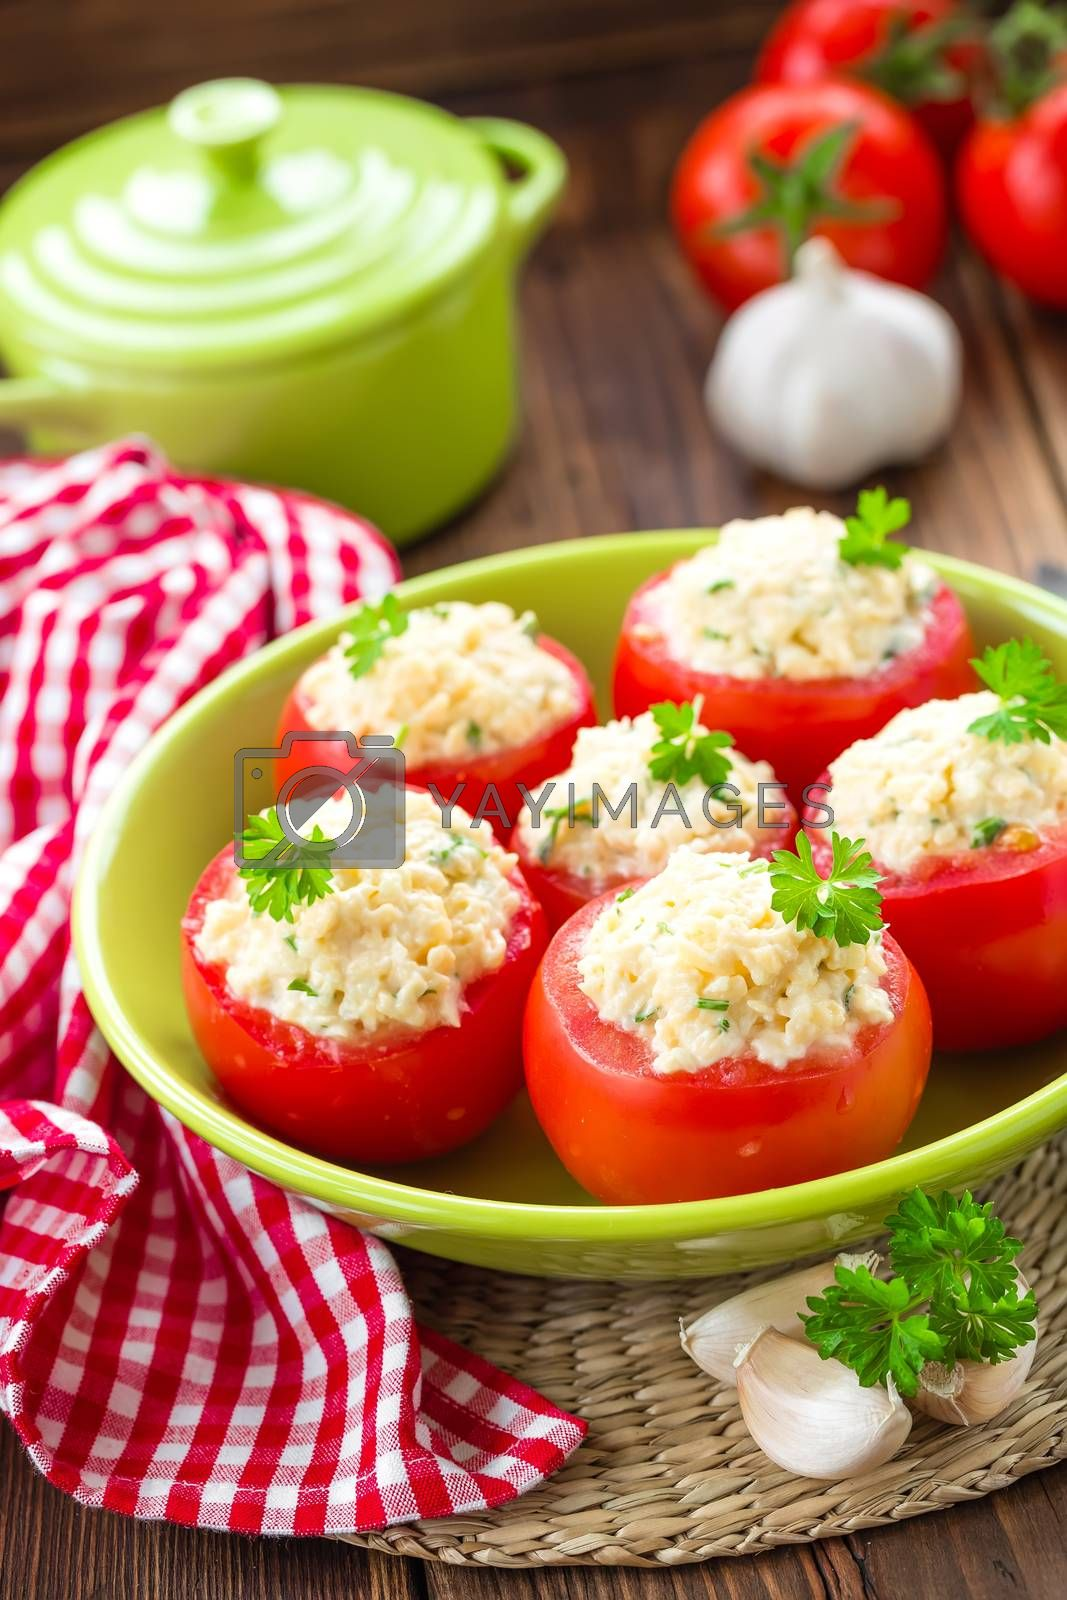 Stuffed tomatoes by yelenayemchuk